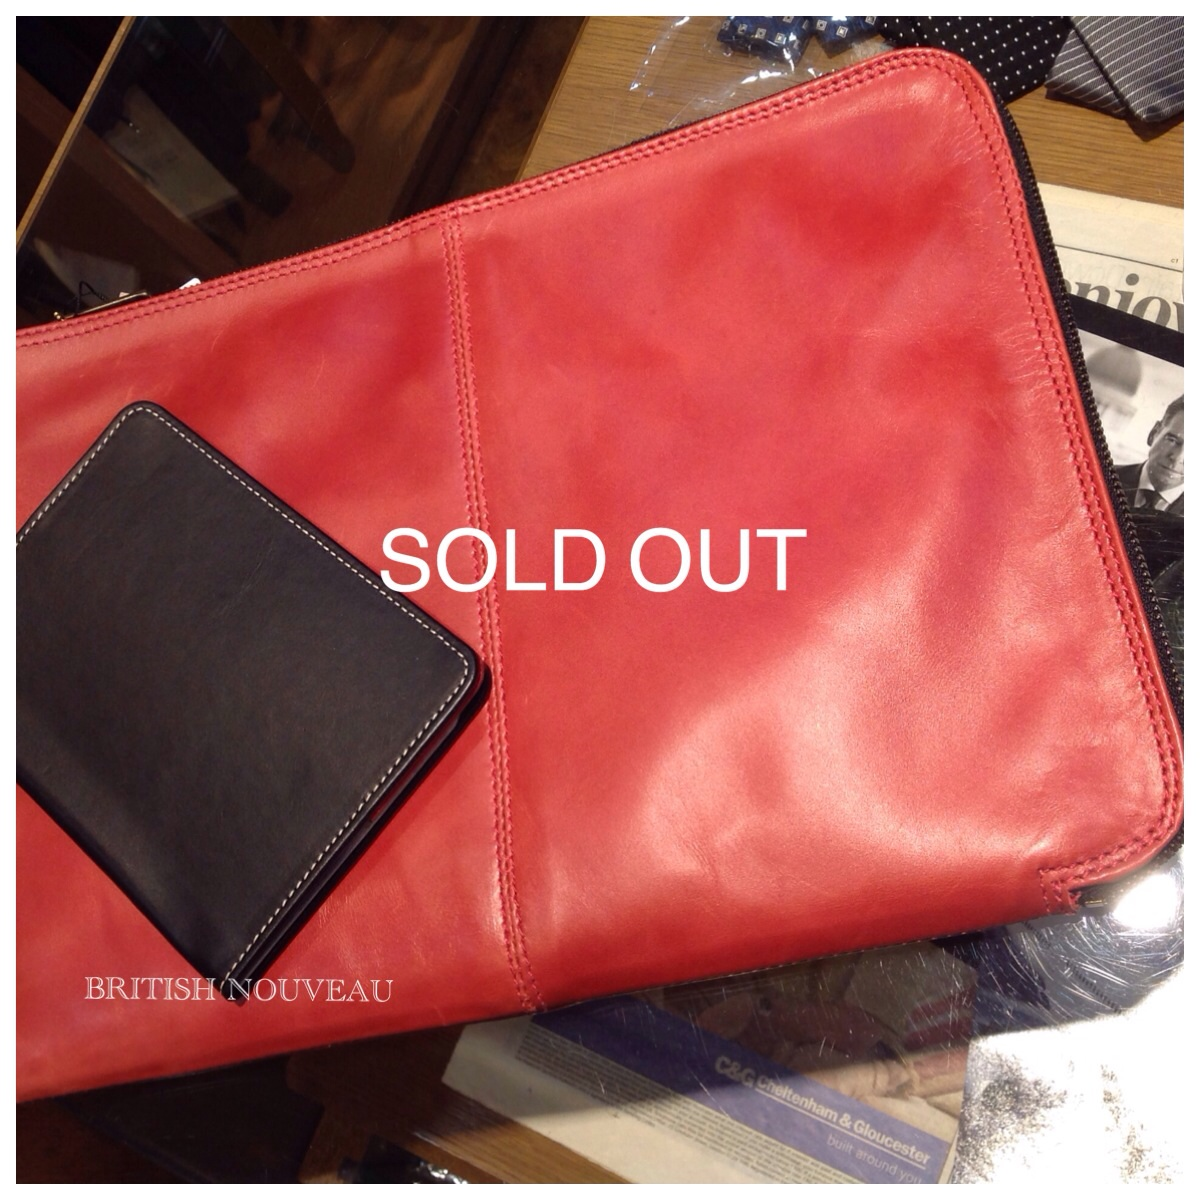 SOLD  OUT  な感じ!_f0039487_13434632.jpg